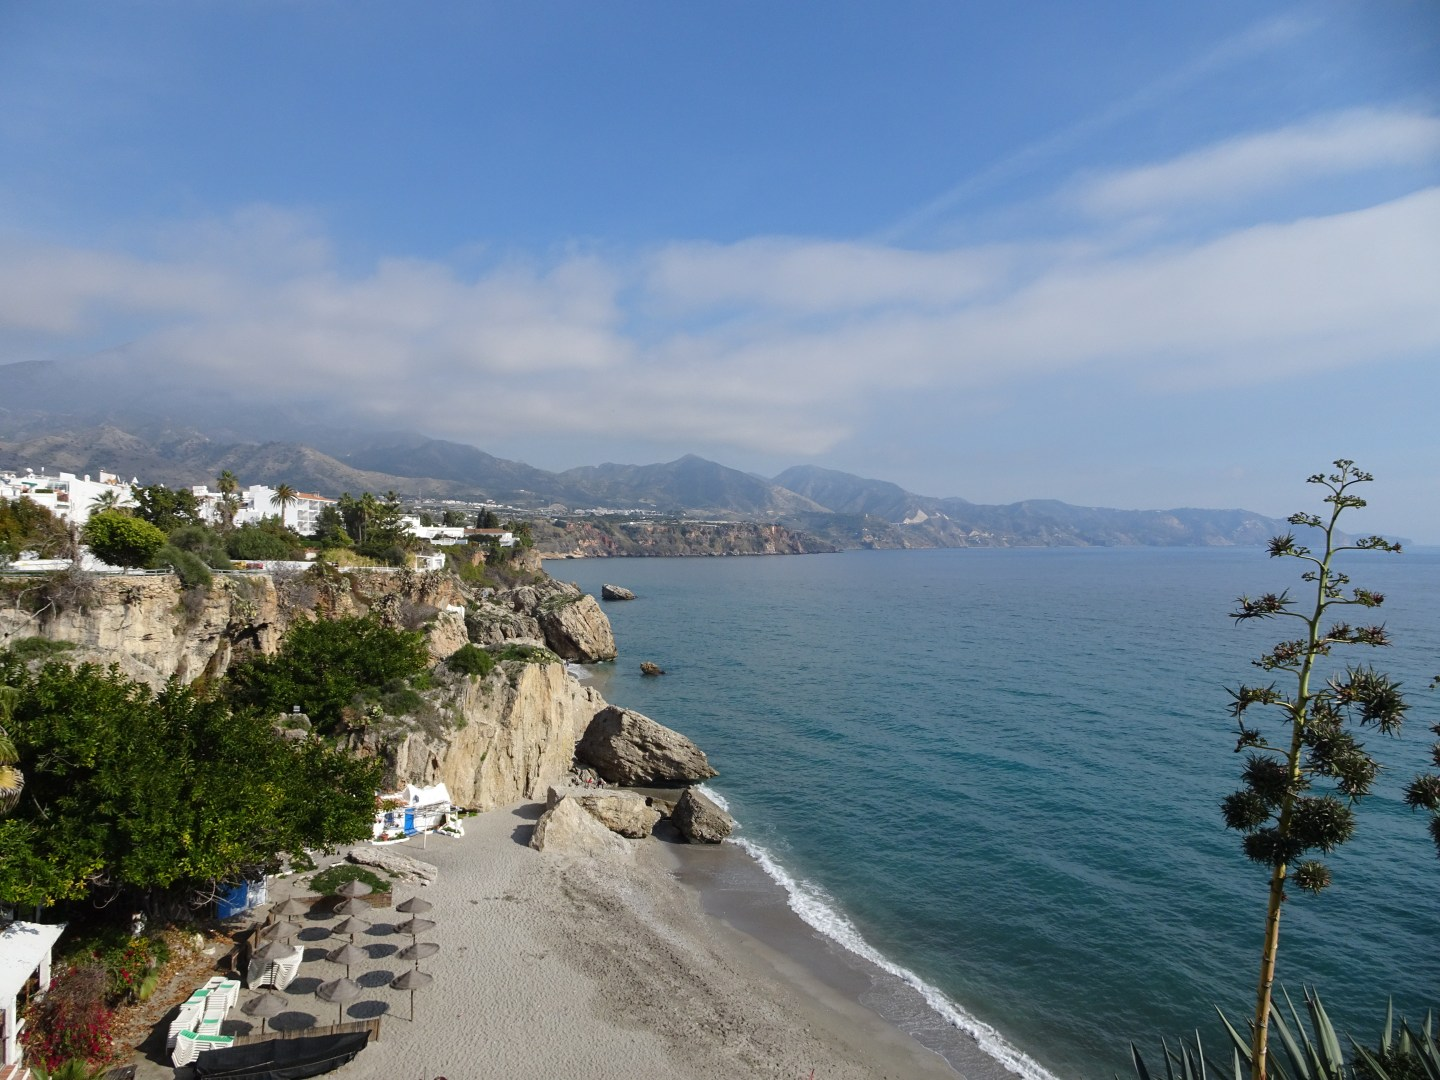 Nerja the jewel of the Costa del Sol